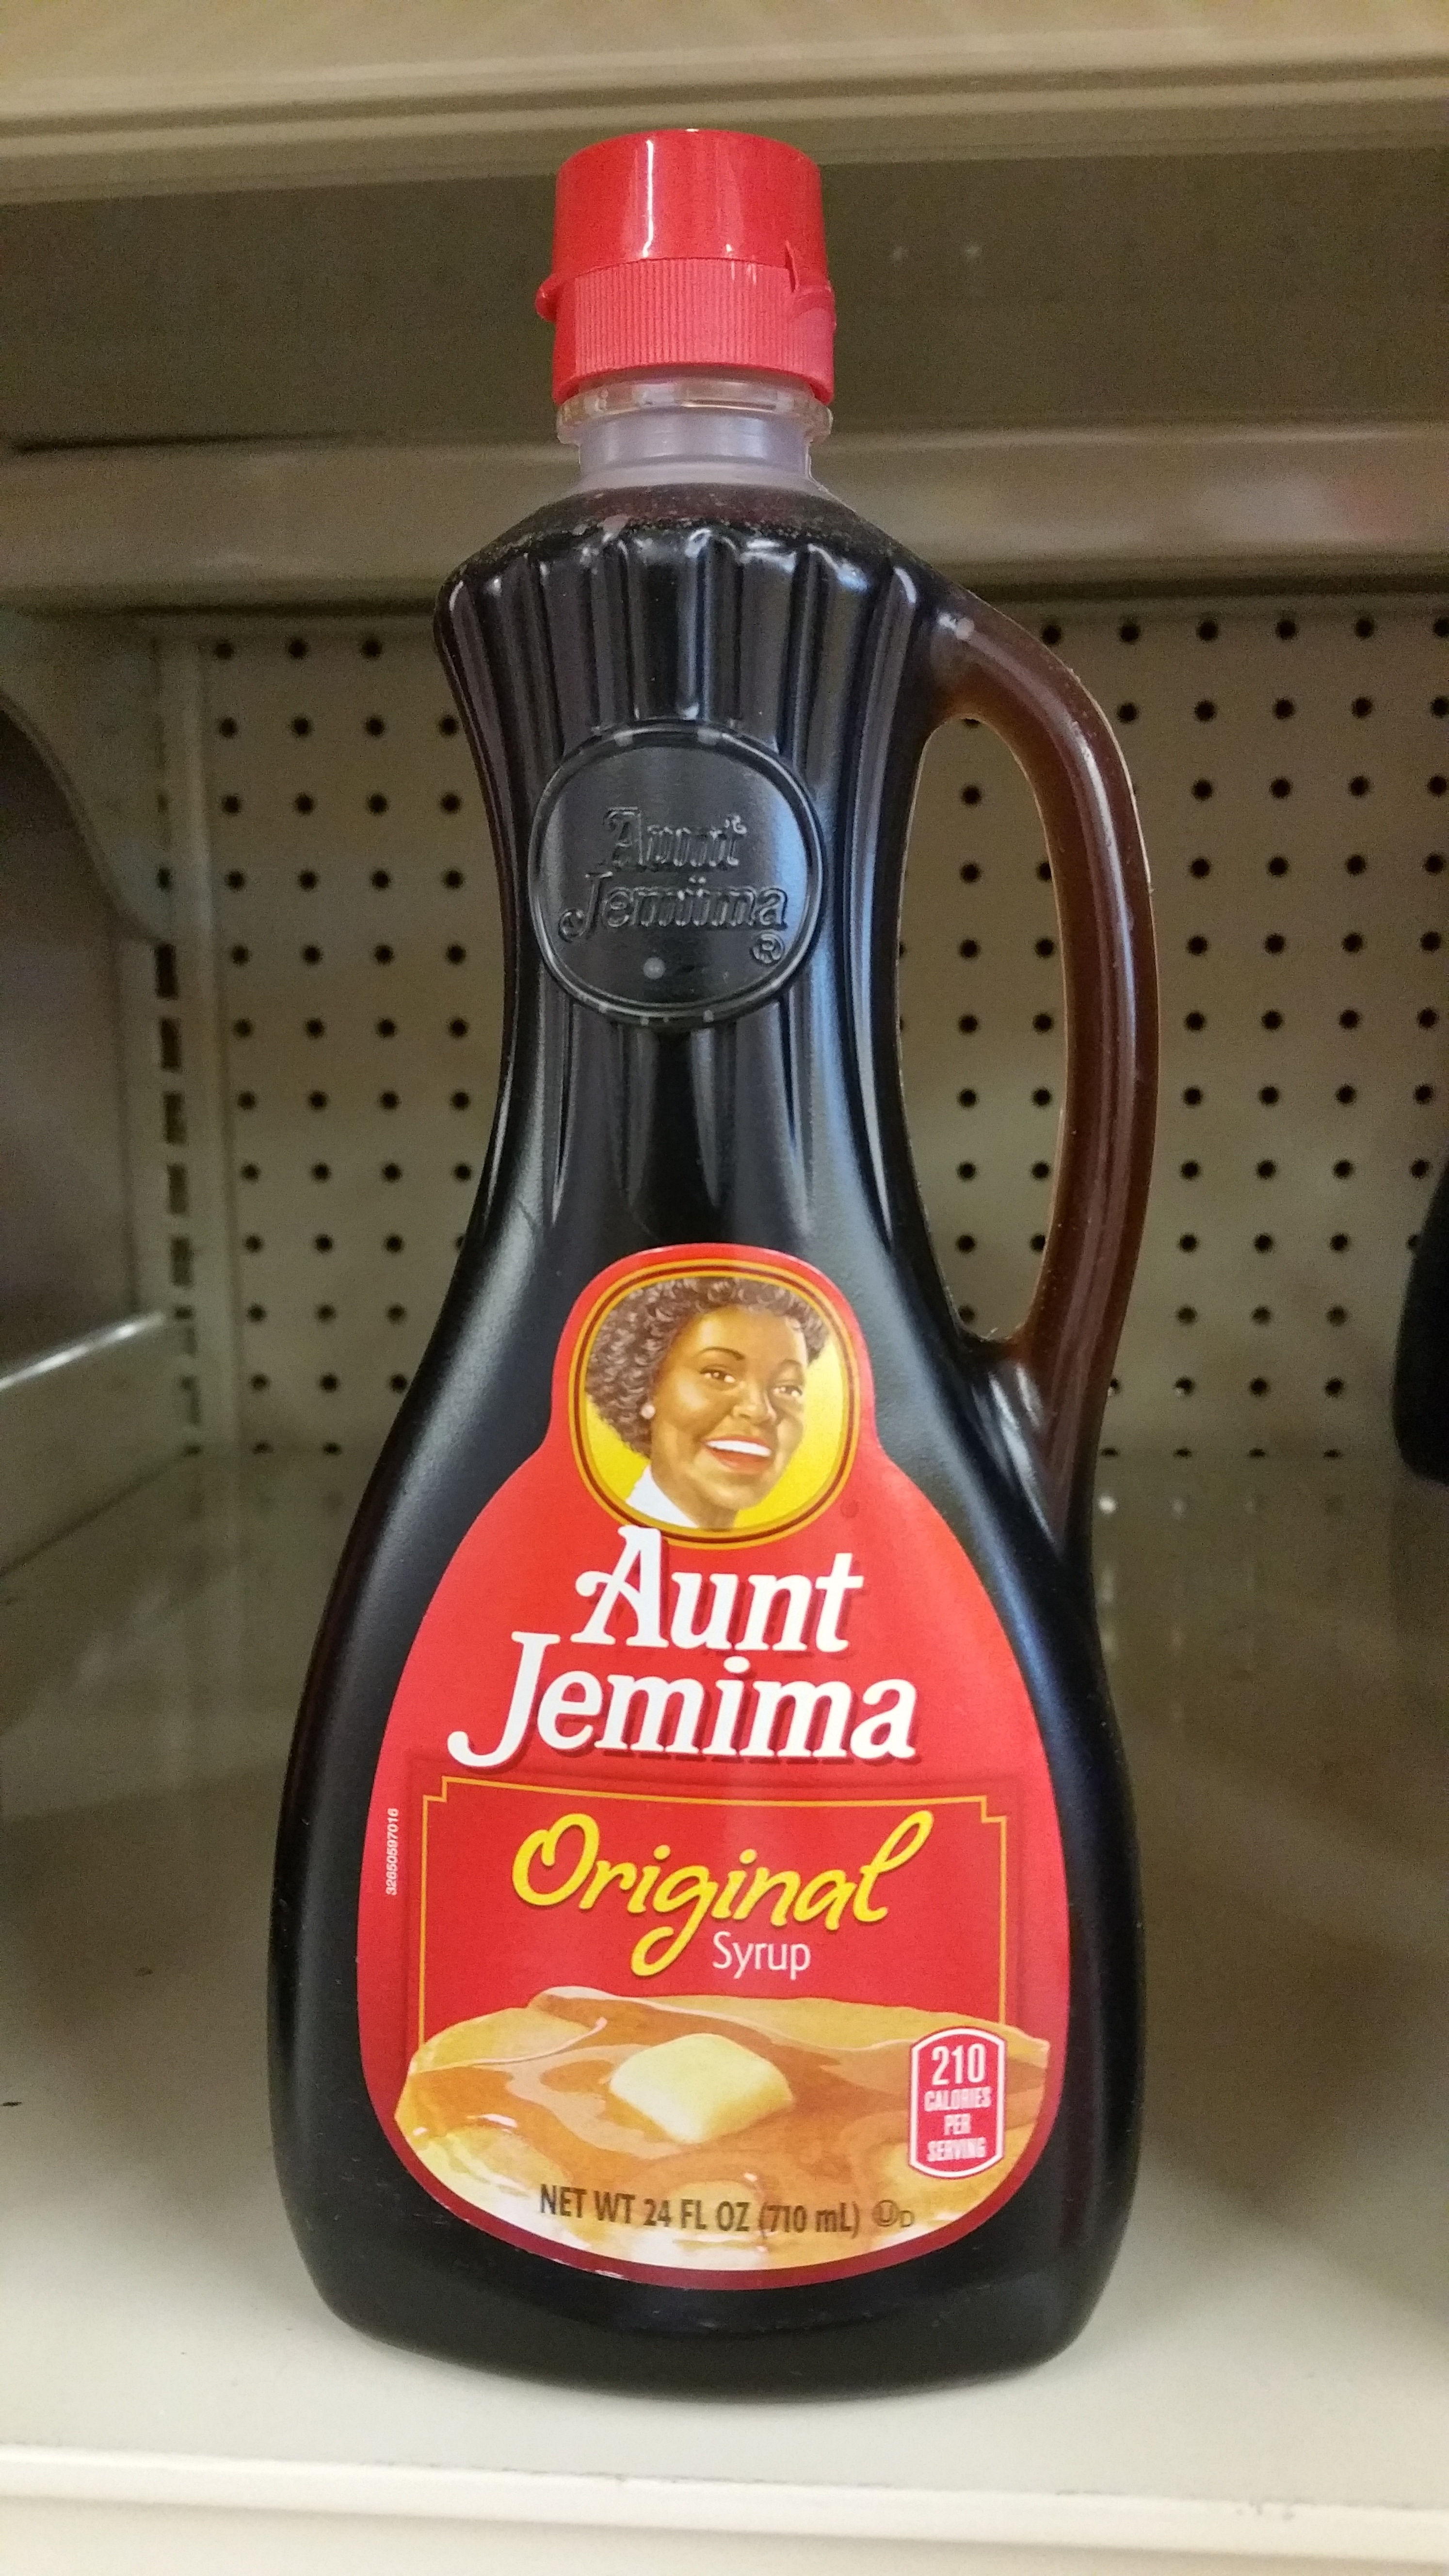 Original Syrup - Product